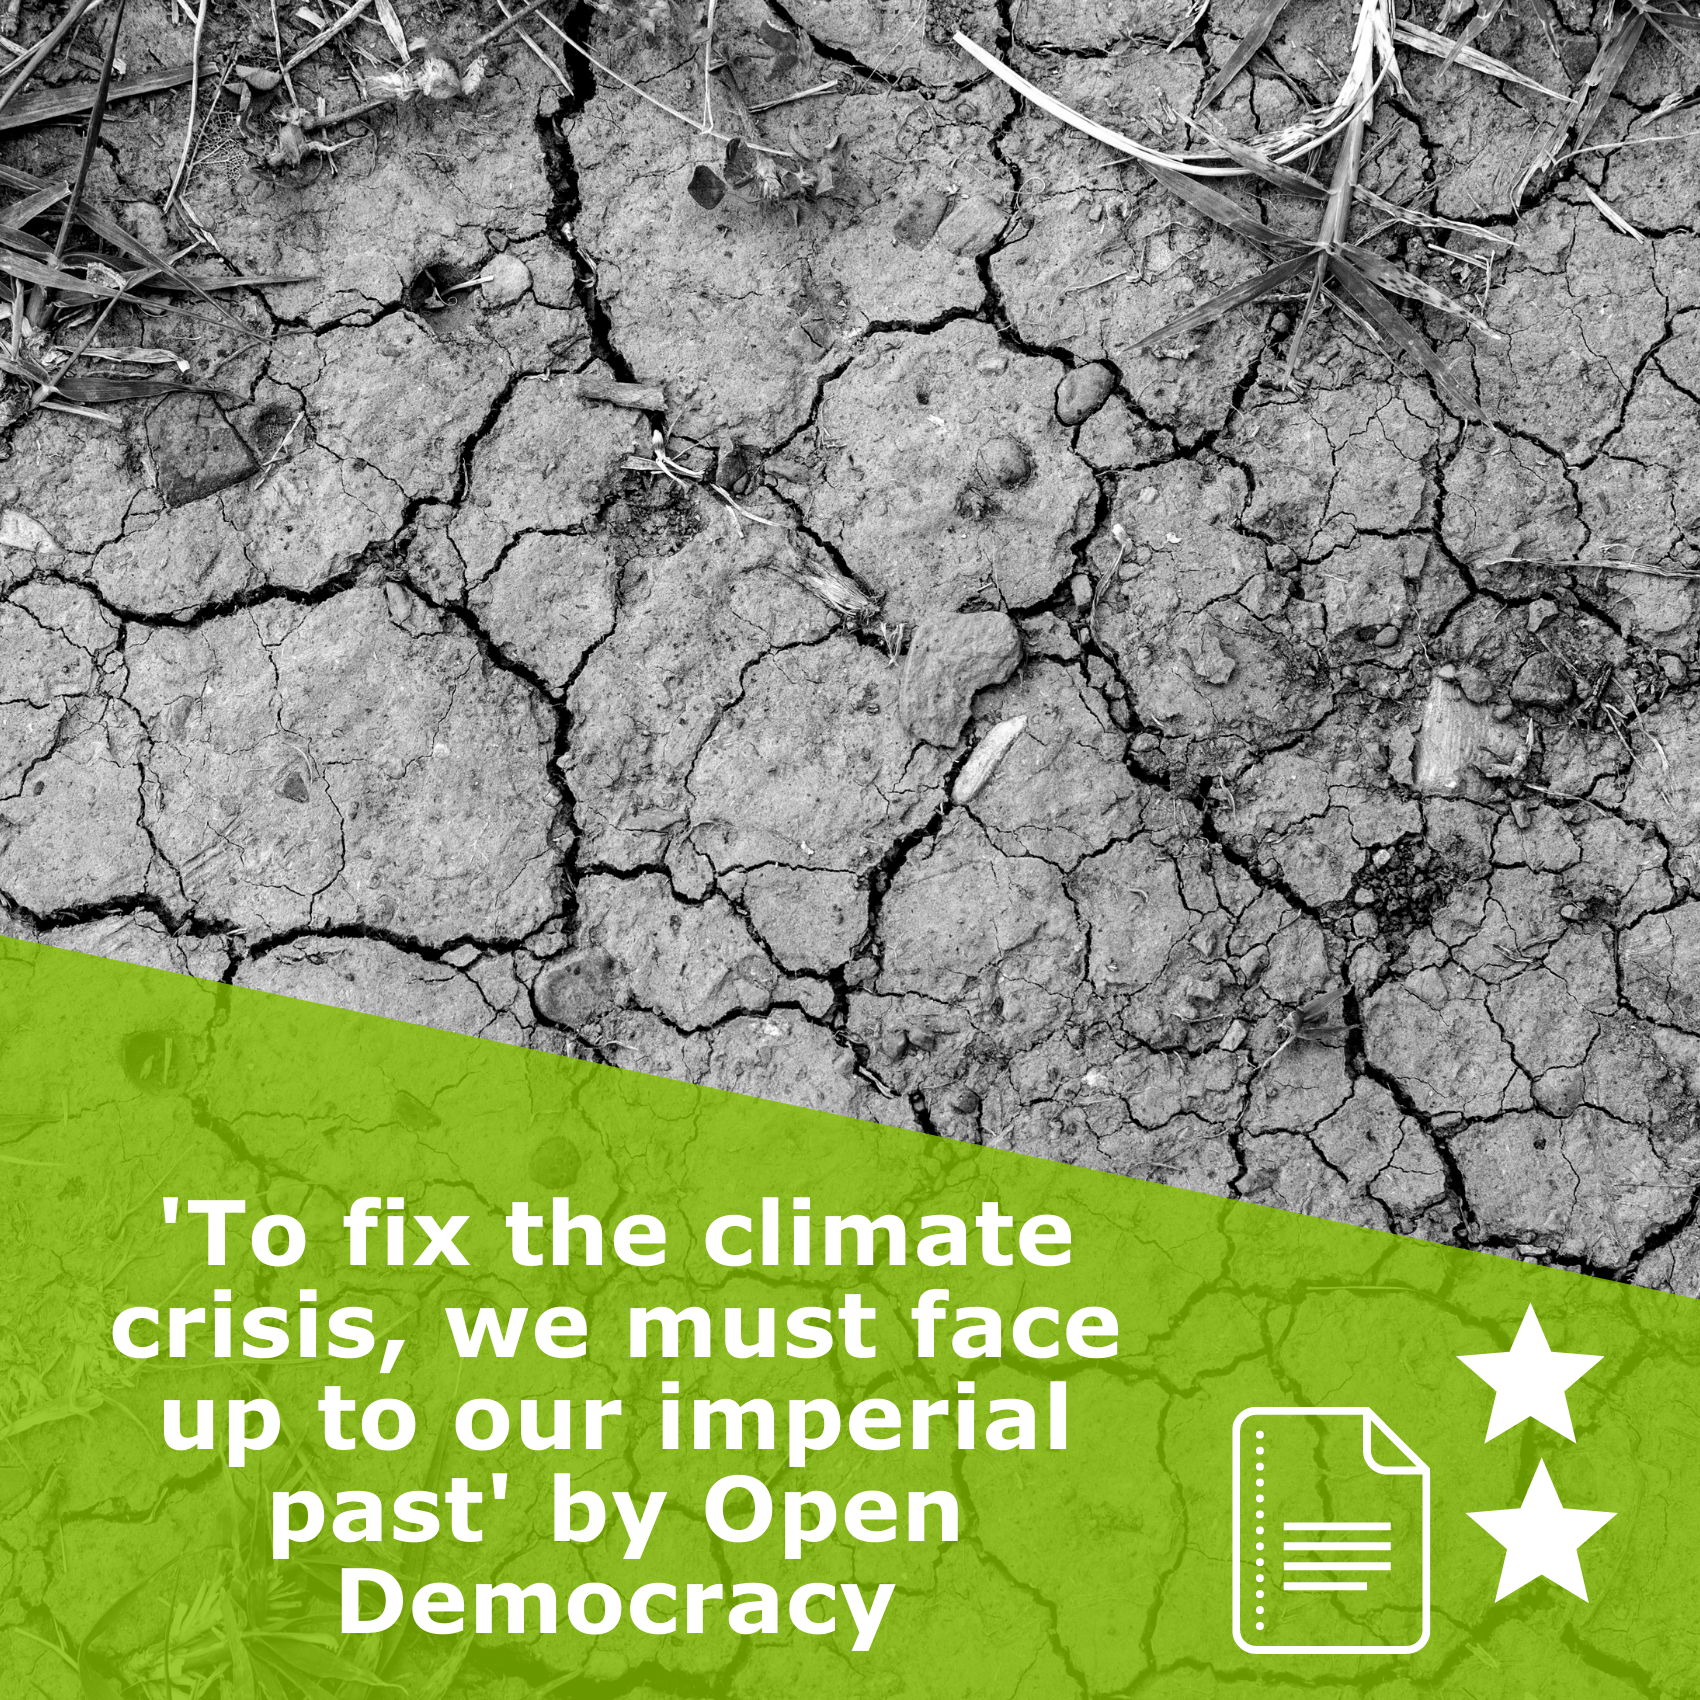 Picture of cracked earth in black and white. Title 'To fix the climate crisis, we must face up to our imperial past' by - Open Democracy. It is an article rated 2 stars